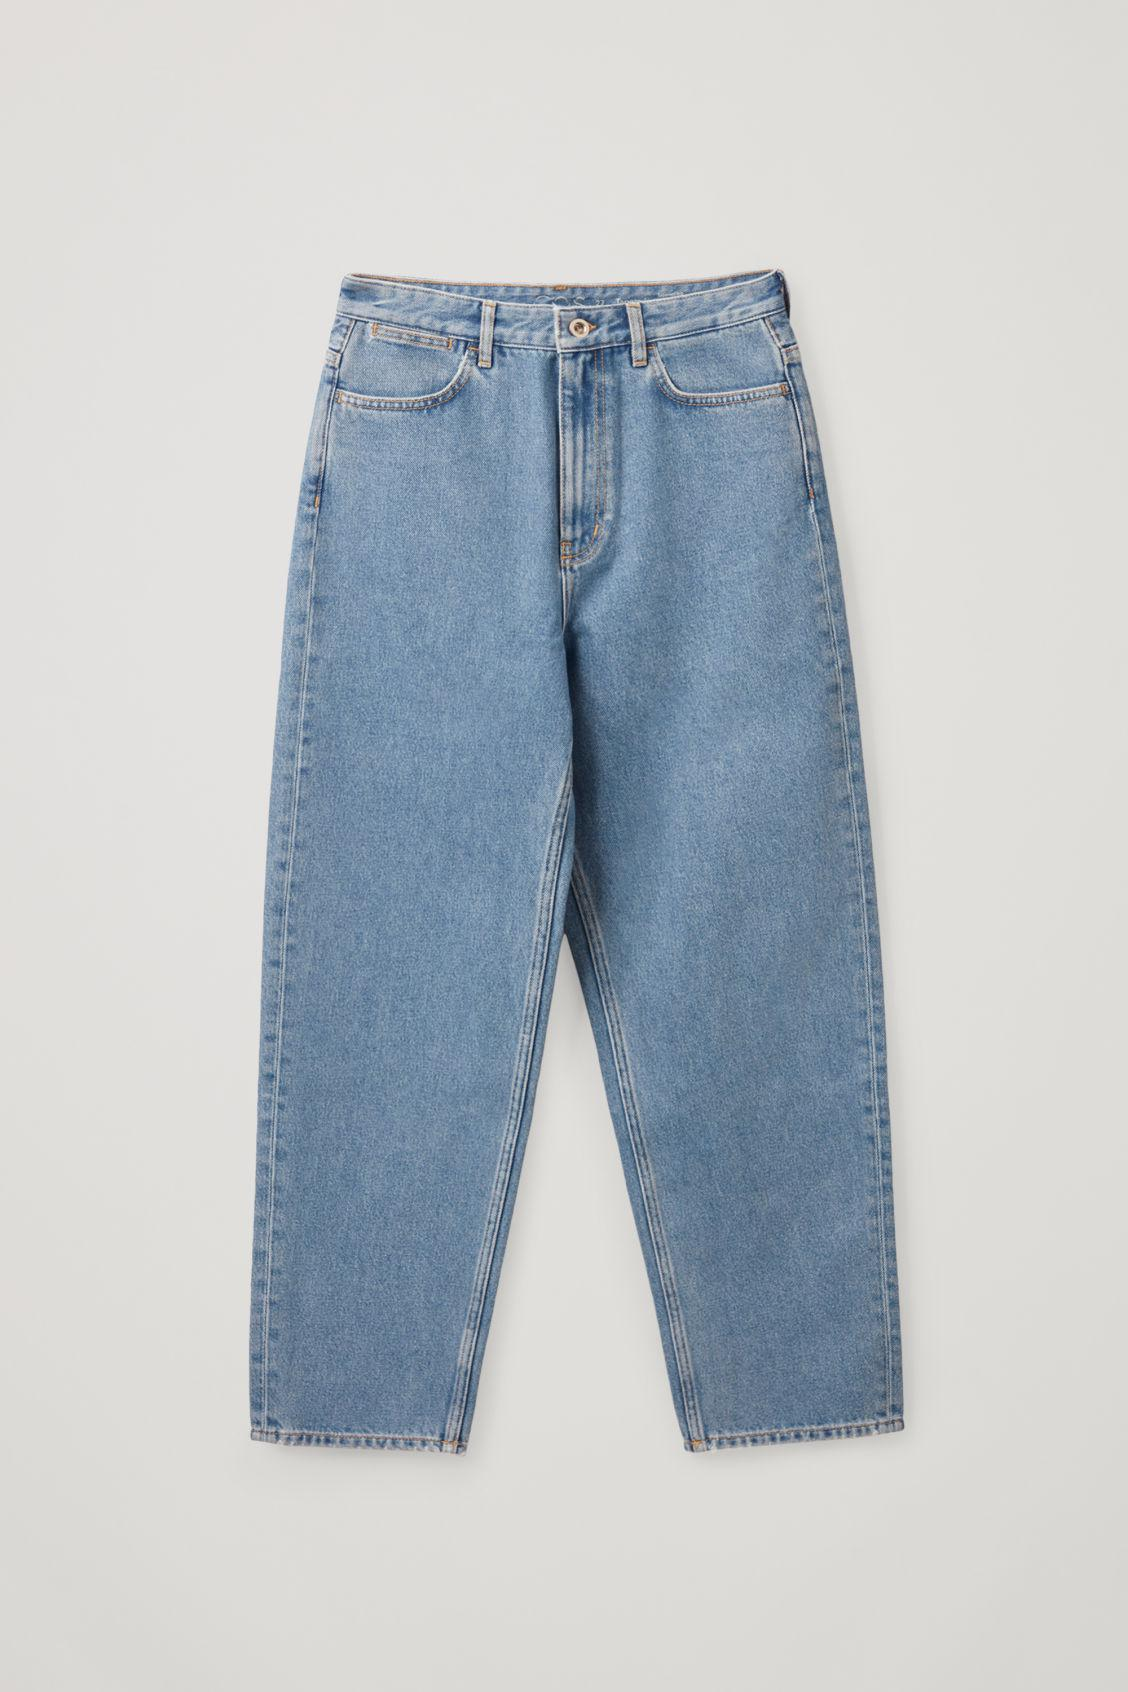 TAPERED HIGH-RISE JEANS 7